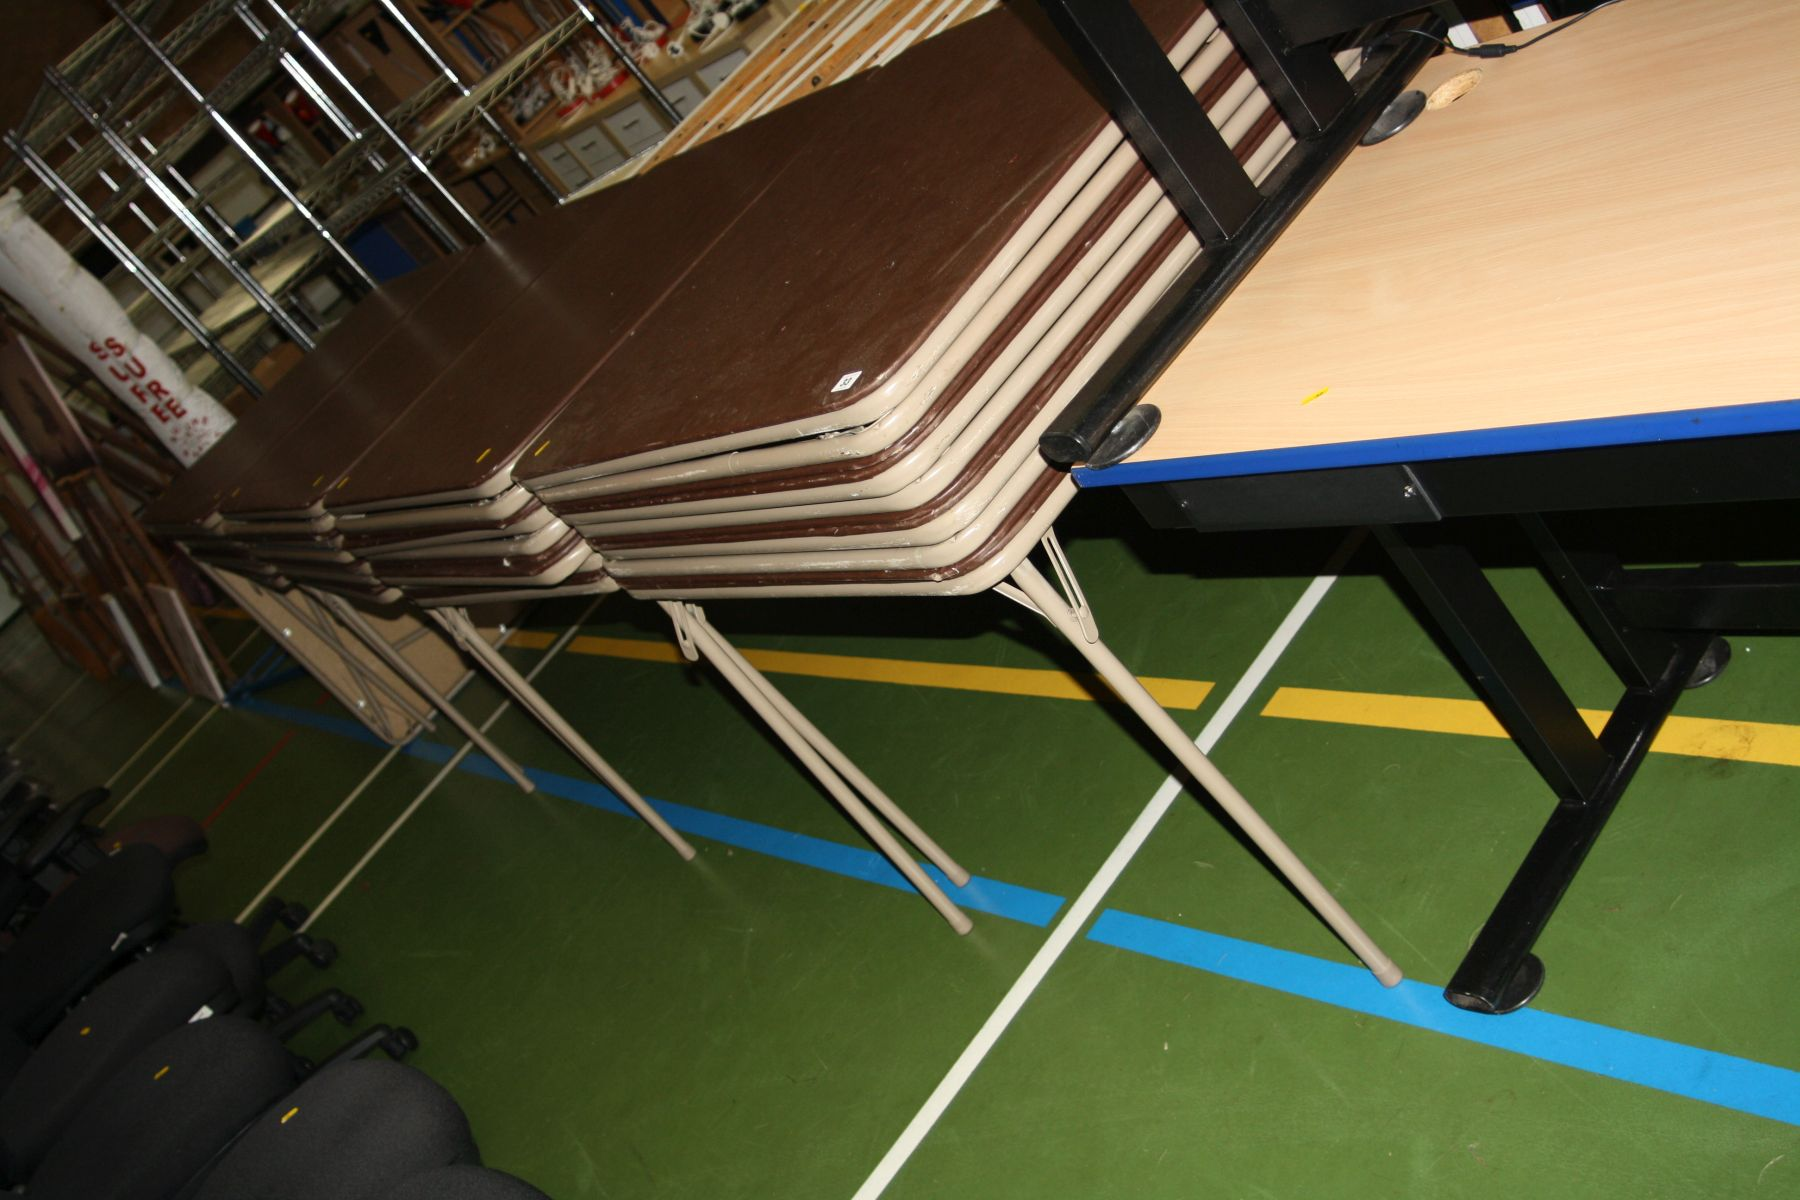 Lot 33 - TWENTY NINE FOLDING 'EXAM' TABLES AND TWO OTHER TABLES, the folding tables are 86x86x71cm high